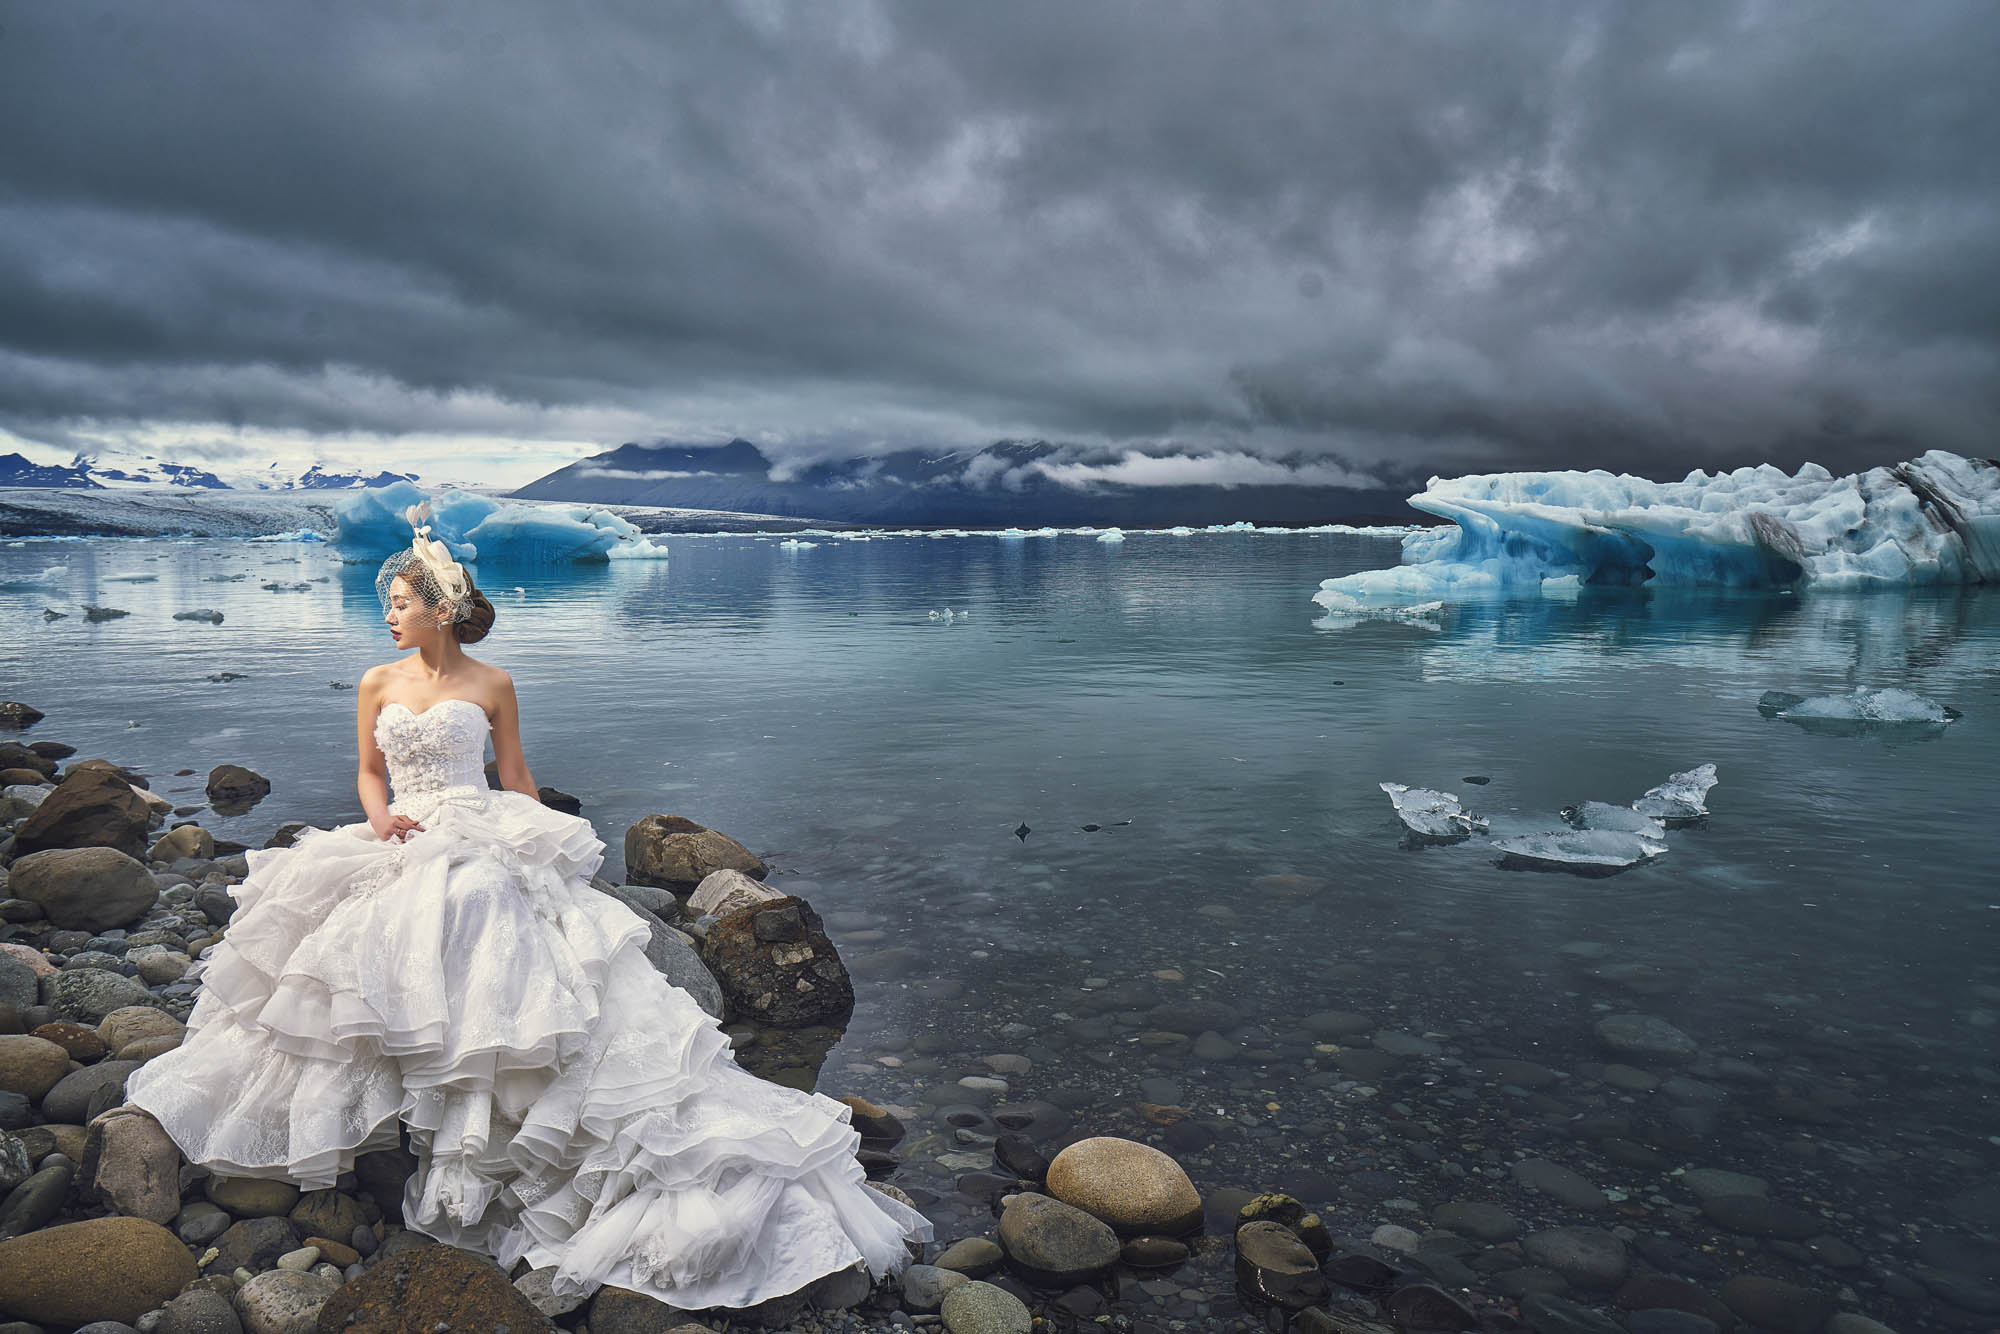 Bride on icy beach with ruffled gown and birdcage veil - photo by CM Leung - Hong Kong